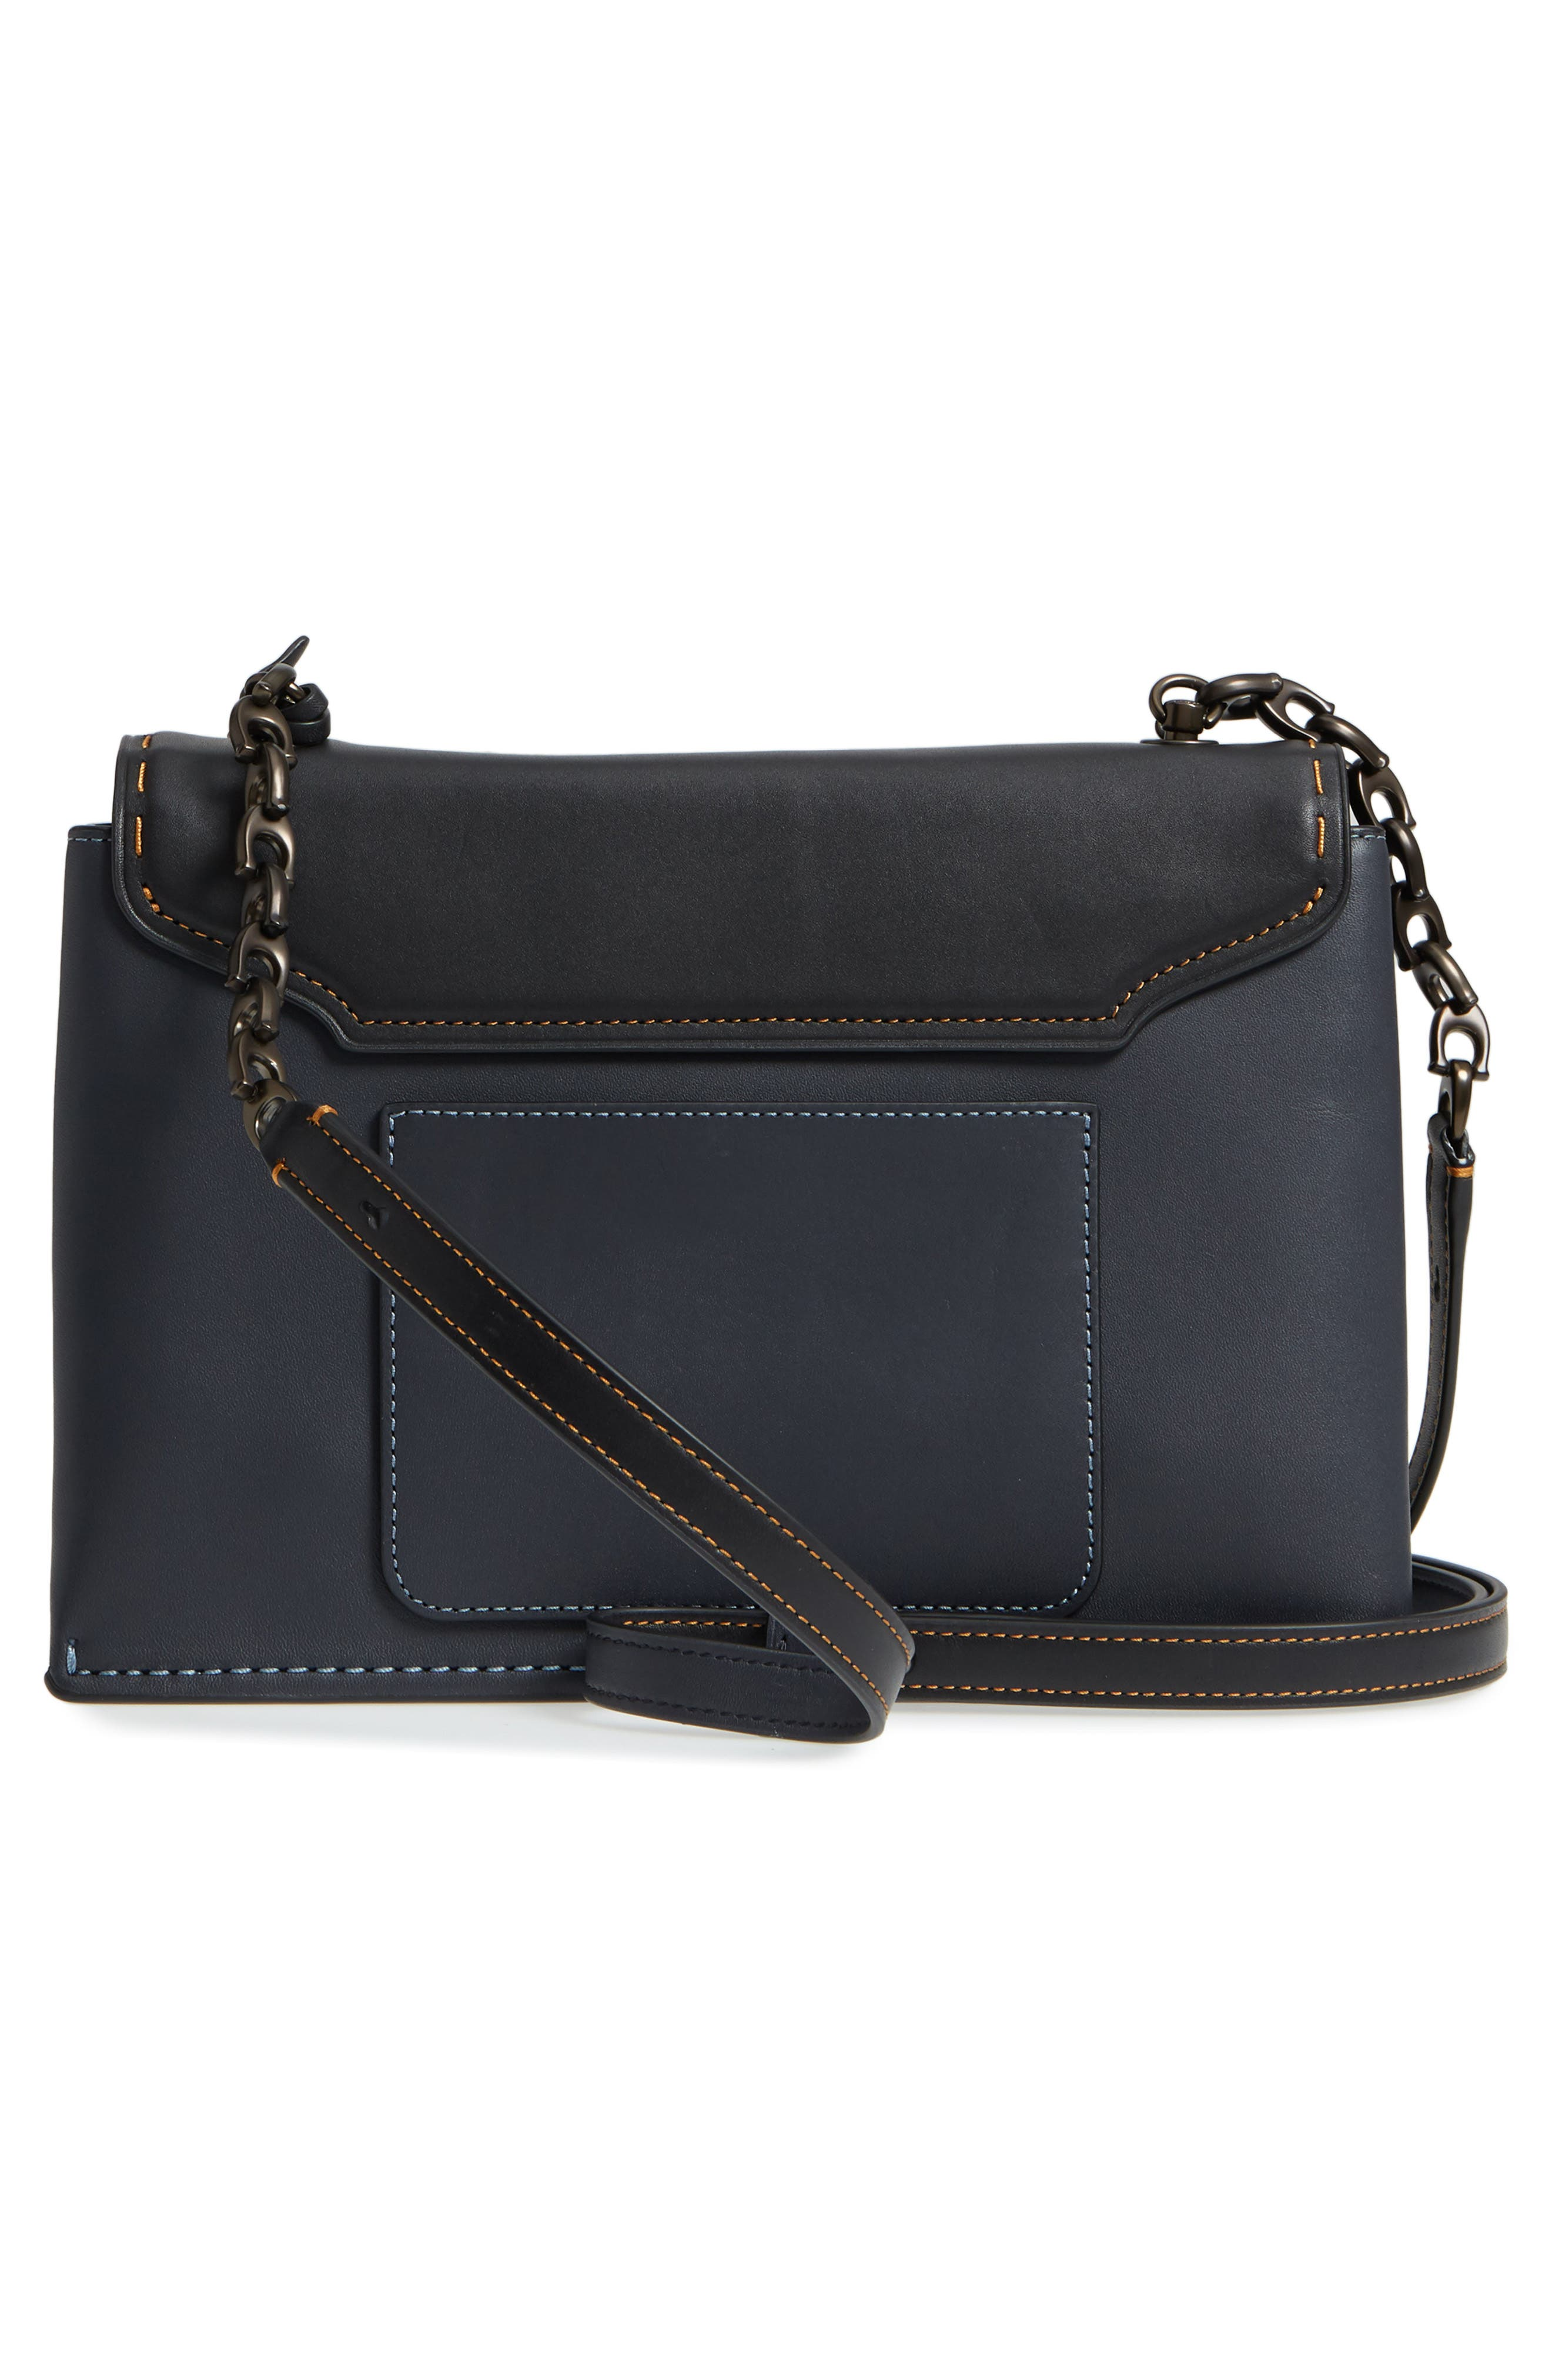 Swagger Chain Leather Crossbody Bag,                             Alternate thumbnail 3, color,                             428